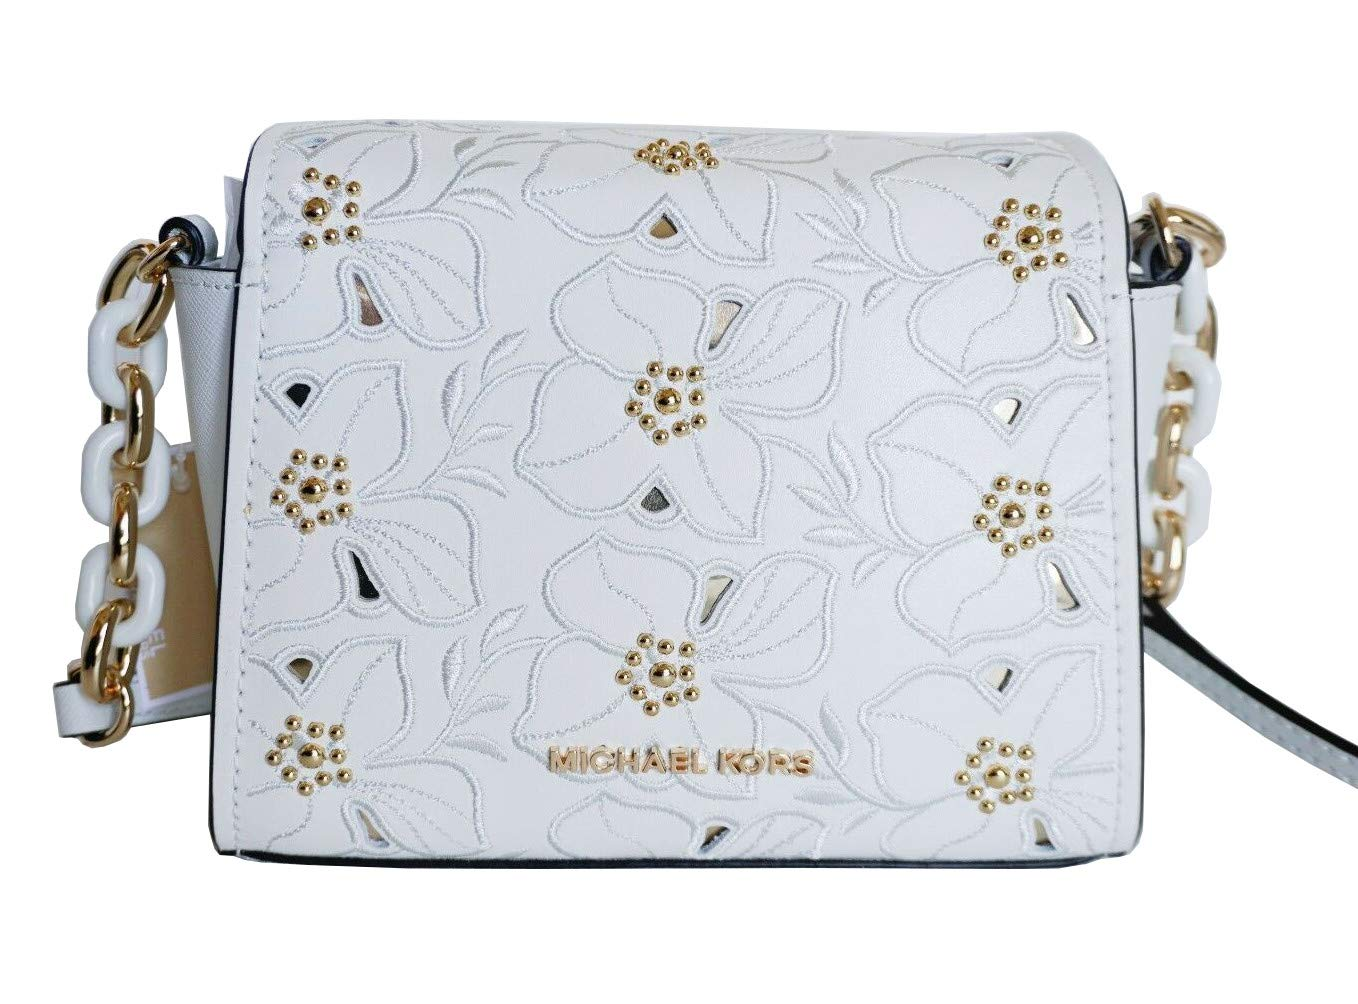 8625bba13215 Michael Kors Sofia Small Leather Perforated Floral Studded Crossbody Purse ( Vanilla)